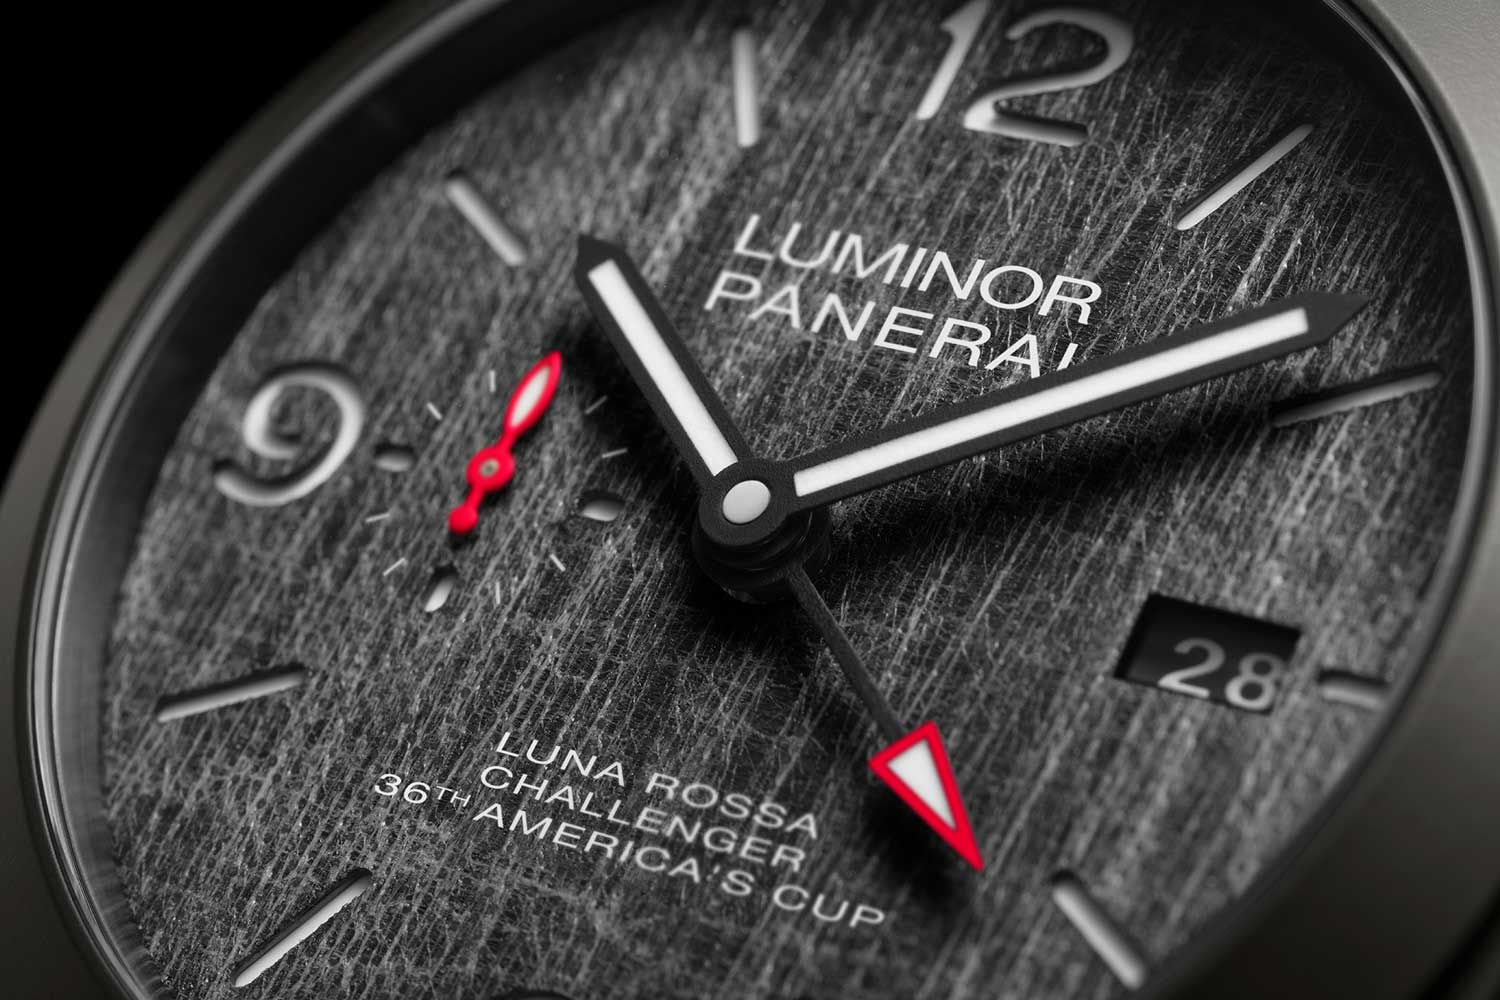 The dial is made in Panerai's signature style with a technical fabric sailcloth from Luna Rossa covering the dial